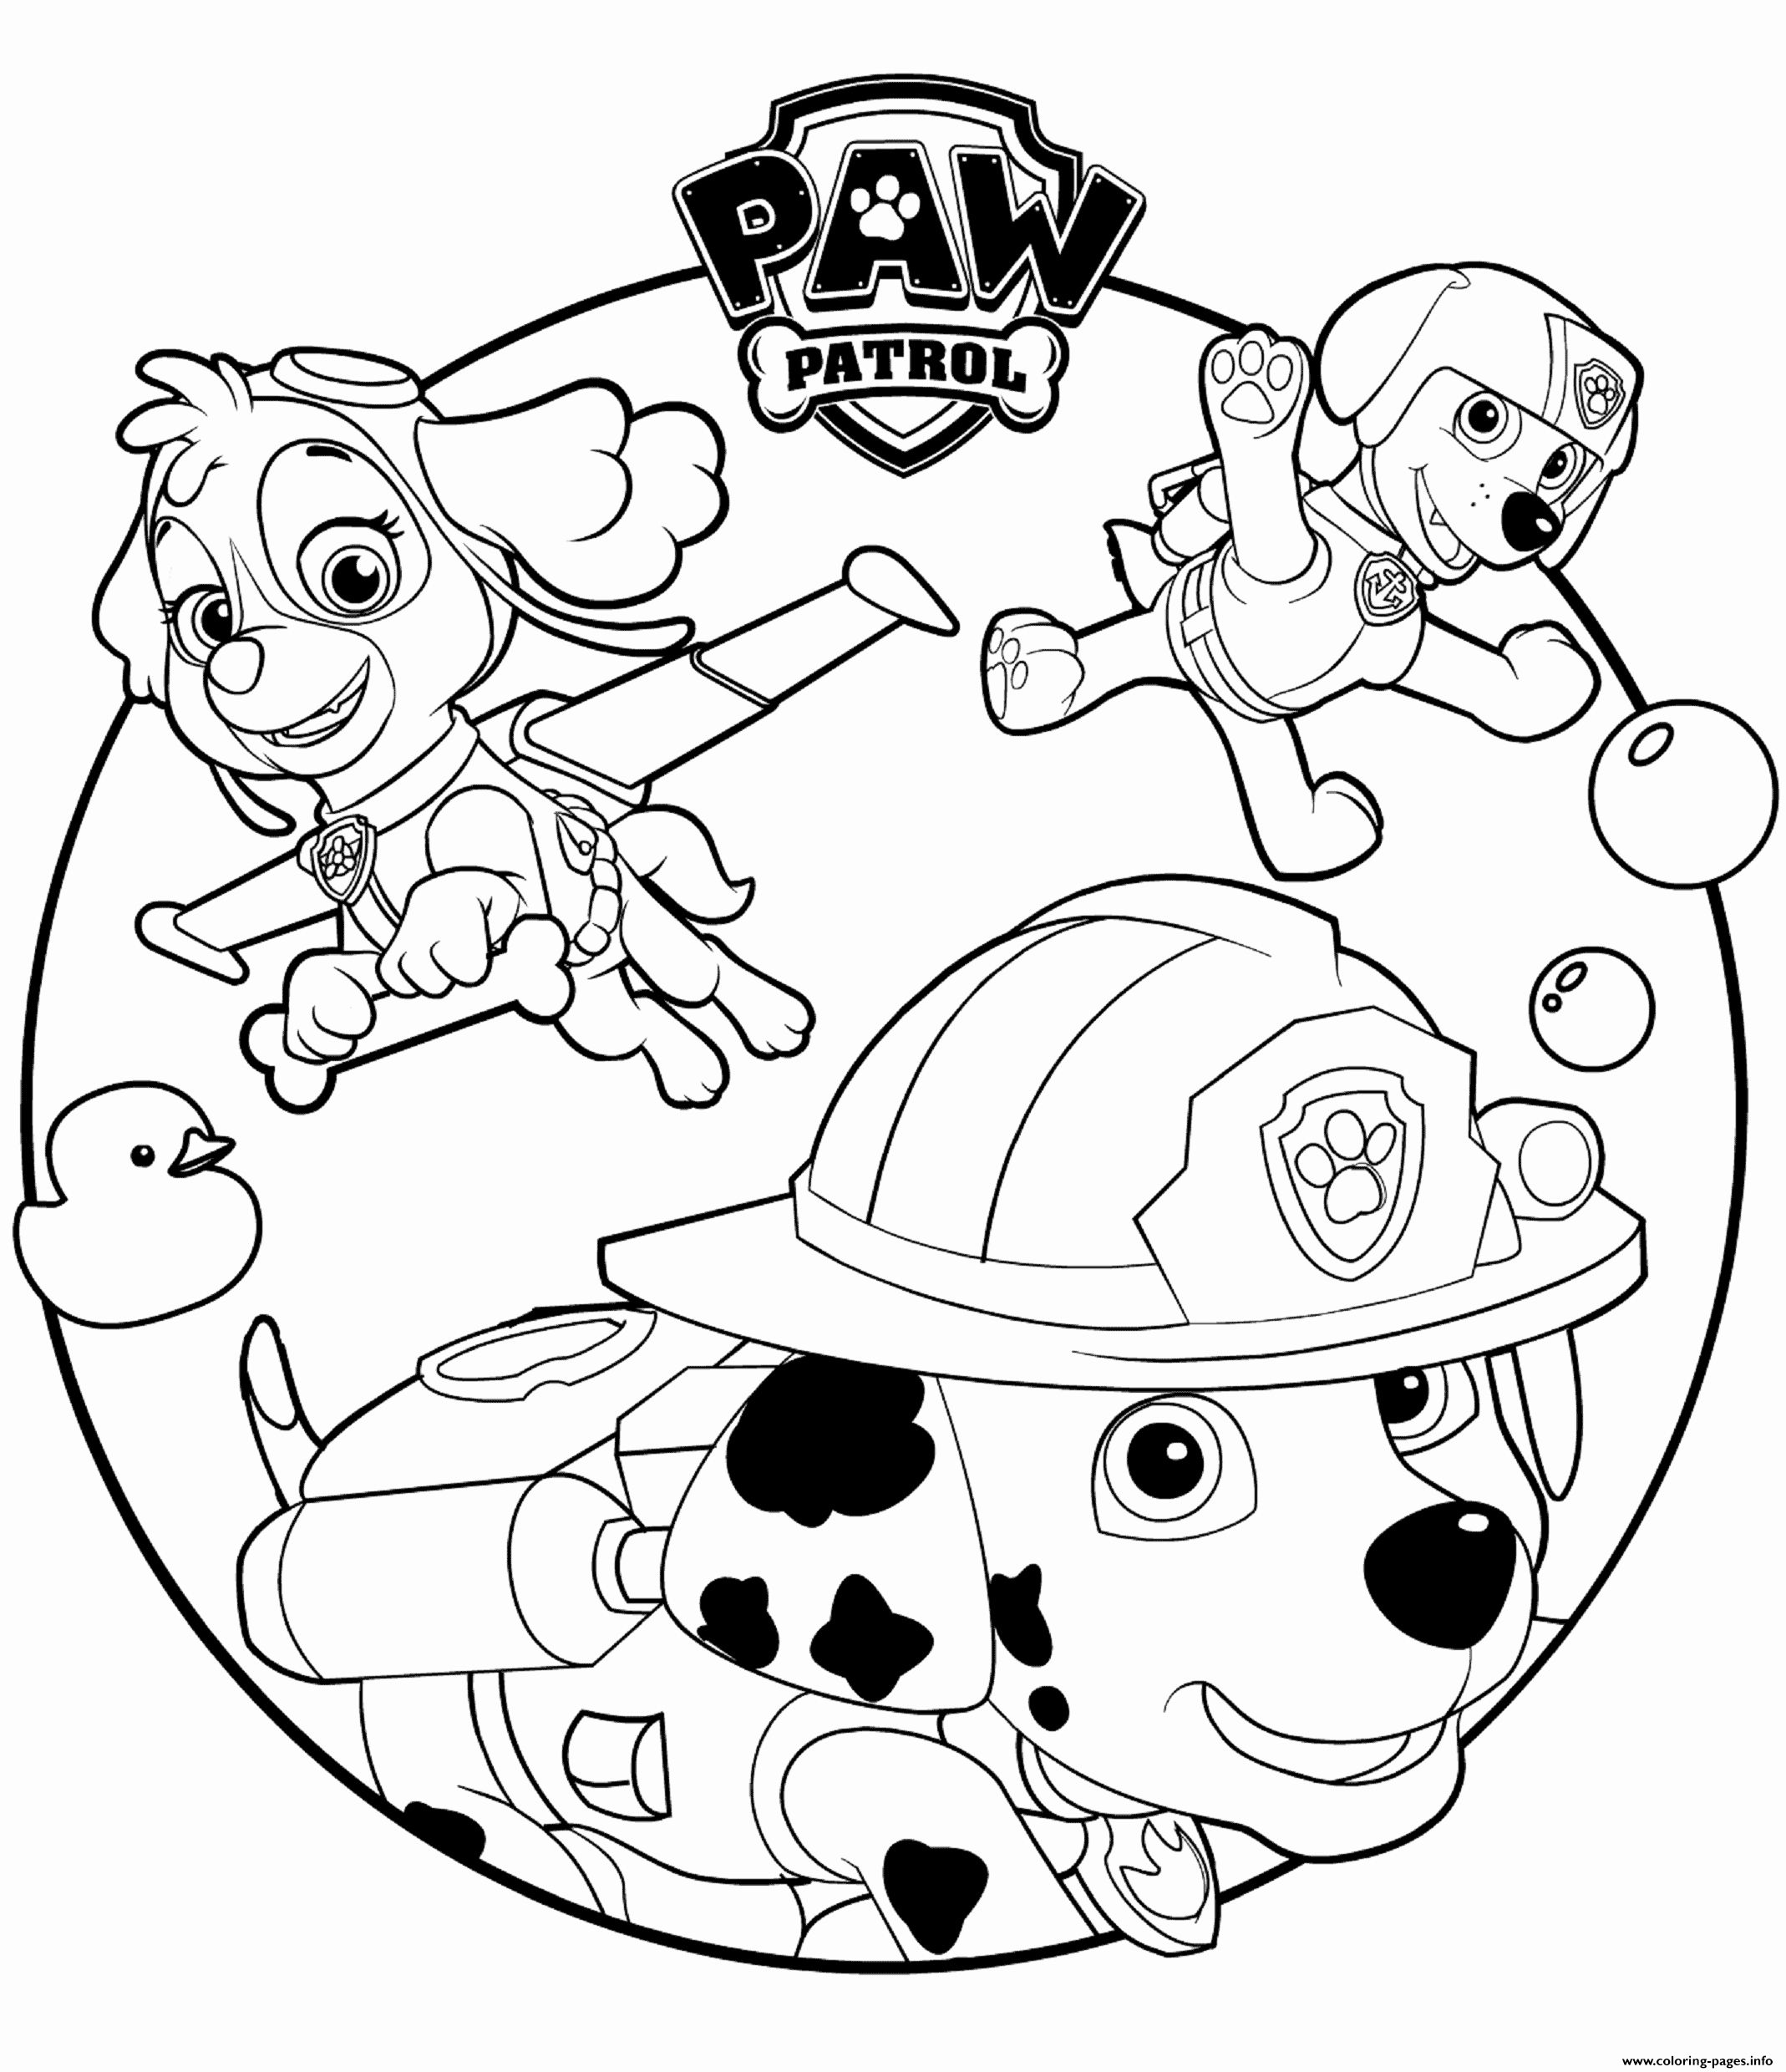 Marshall Paw Patrol Coloring Page New Skye Marshall And Rocky Paw